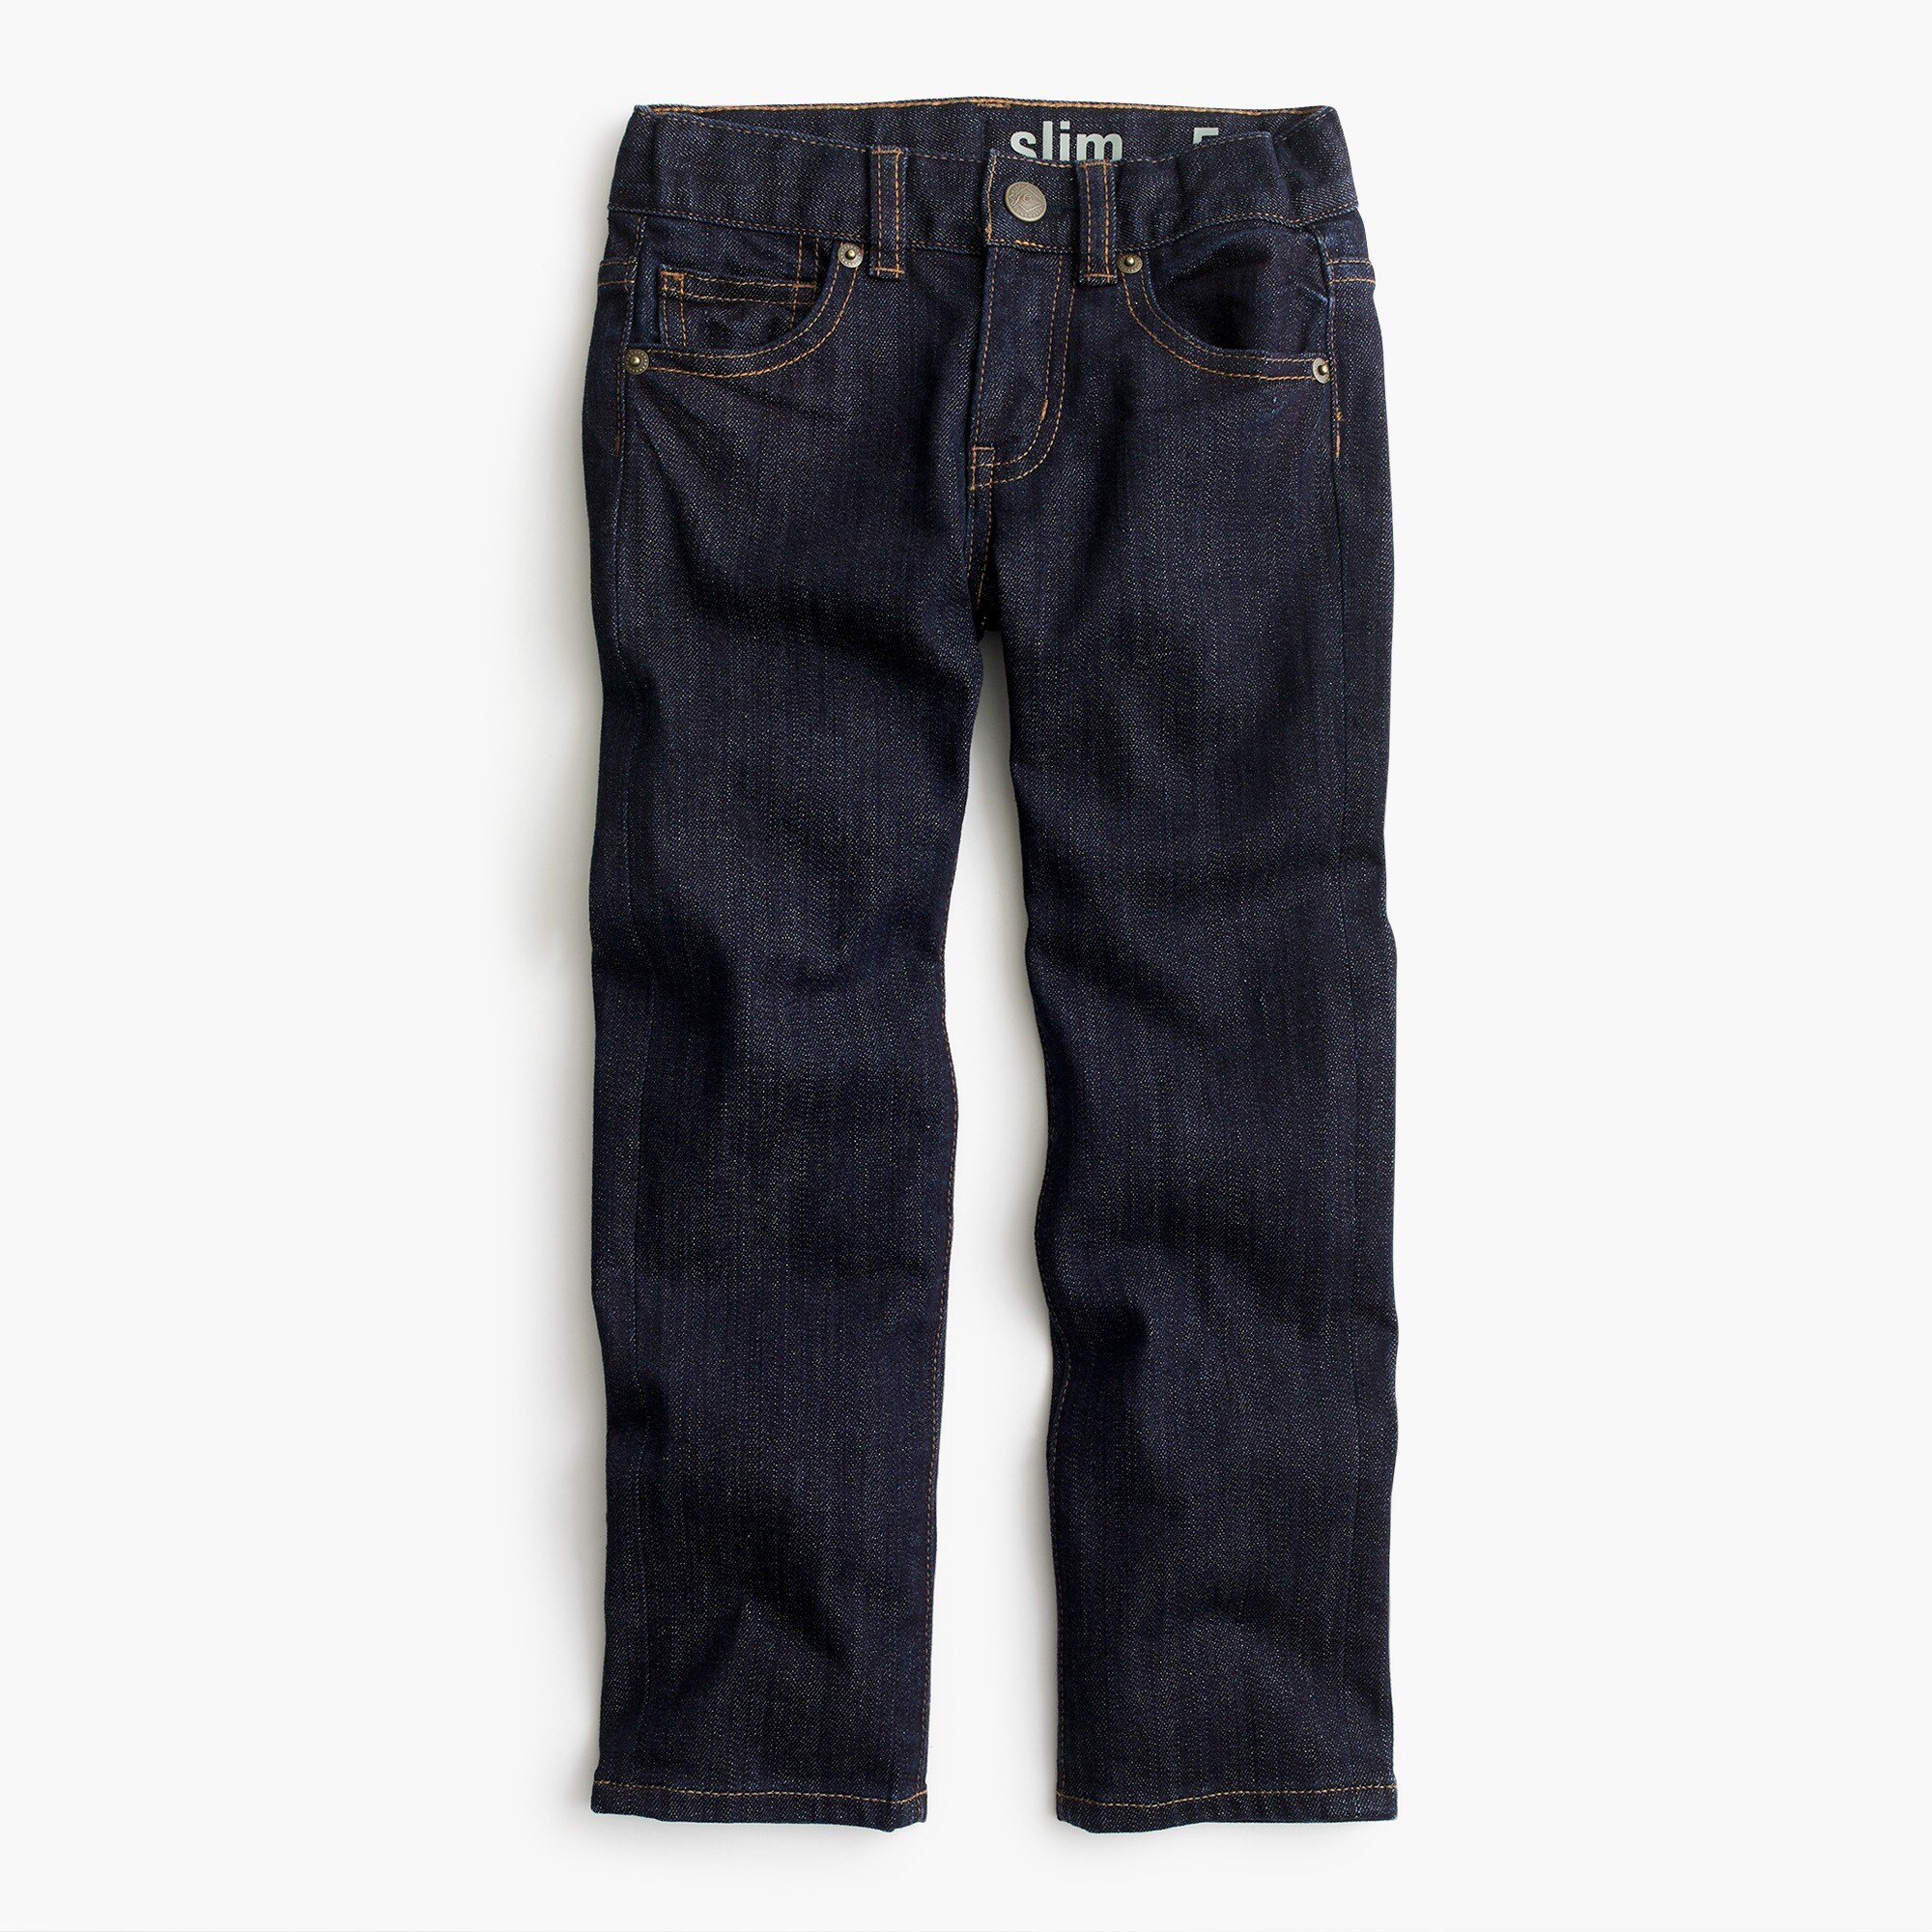 Image 1 for Boys' rinse wash denim in slim fit